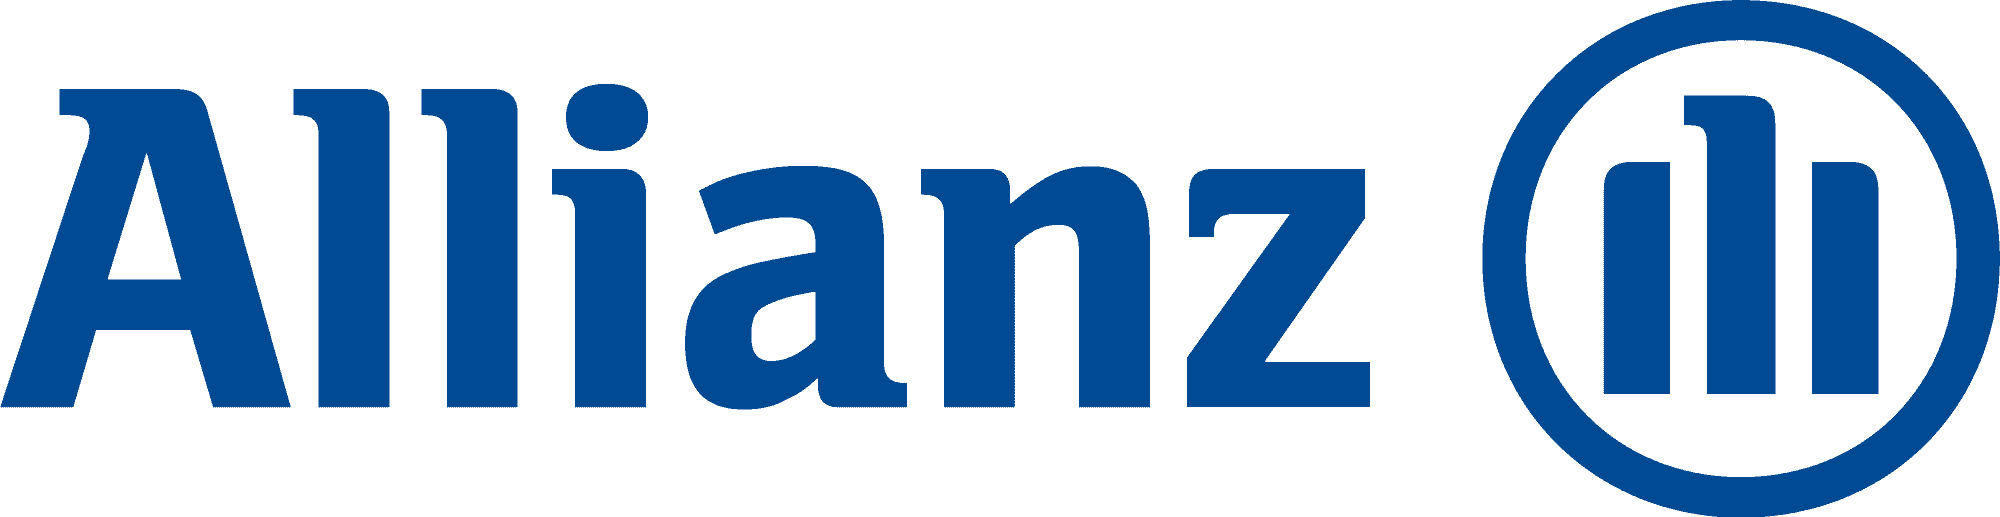 Allianz 2 - IT - Enterprise